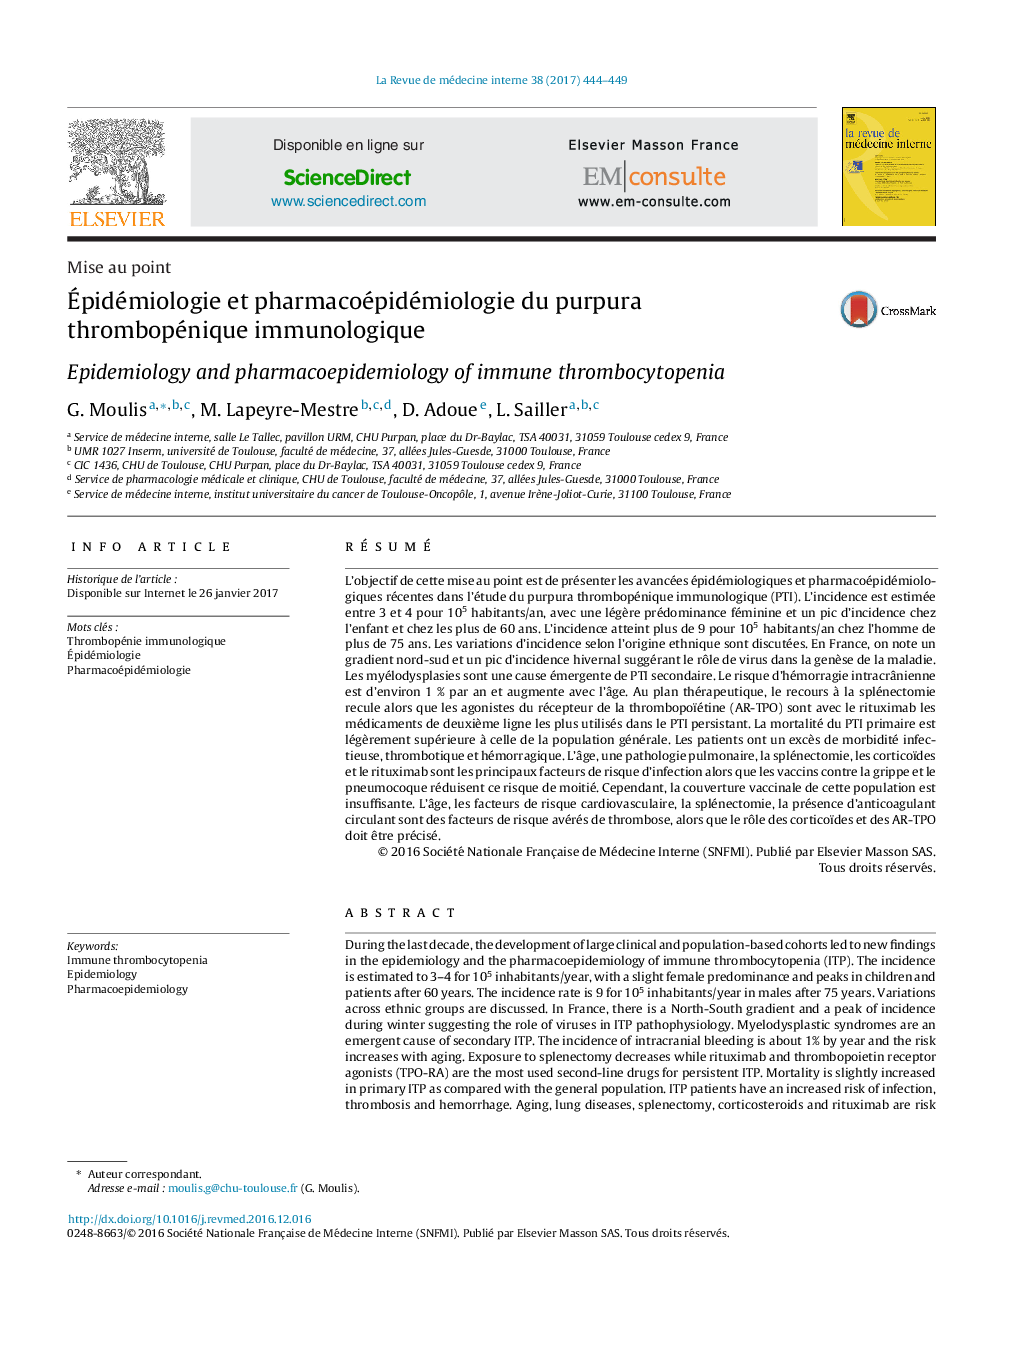 Mise au pointÉpidémiologie et pharmacoépidémiologie du purpura thrombopénique immunologiqueEpidemiology and pharmacoepidemiology of immune thrombocytopenia